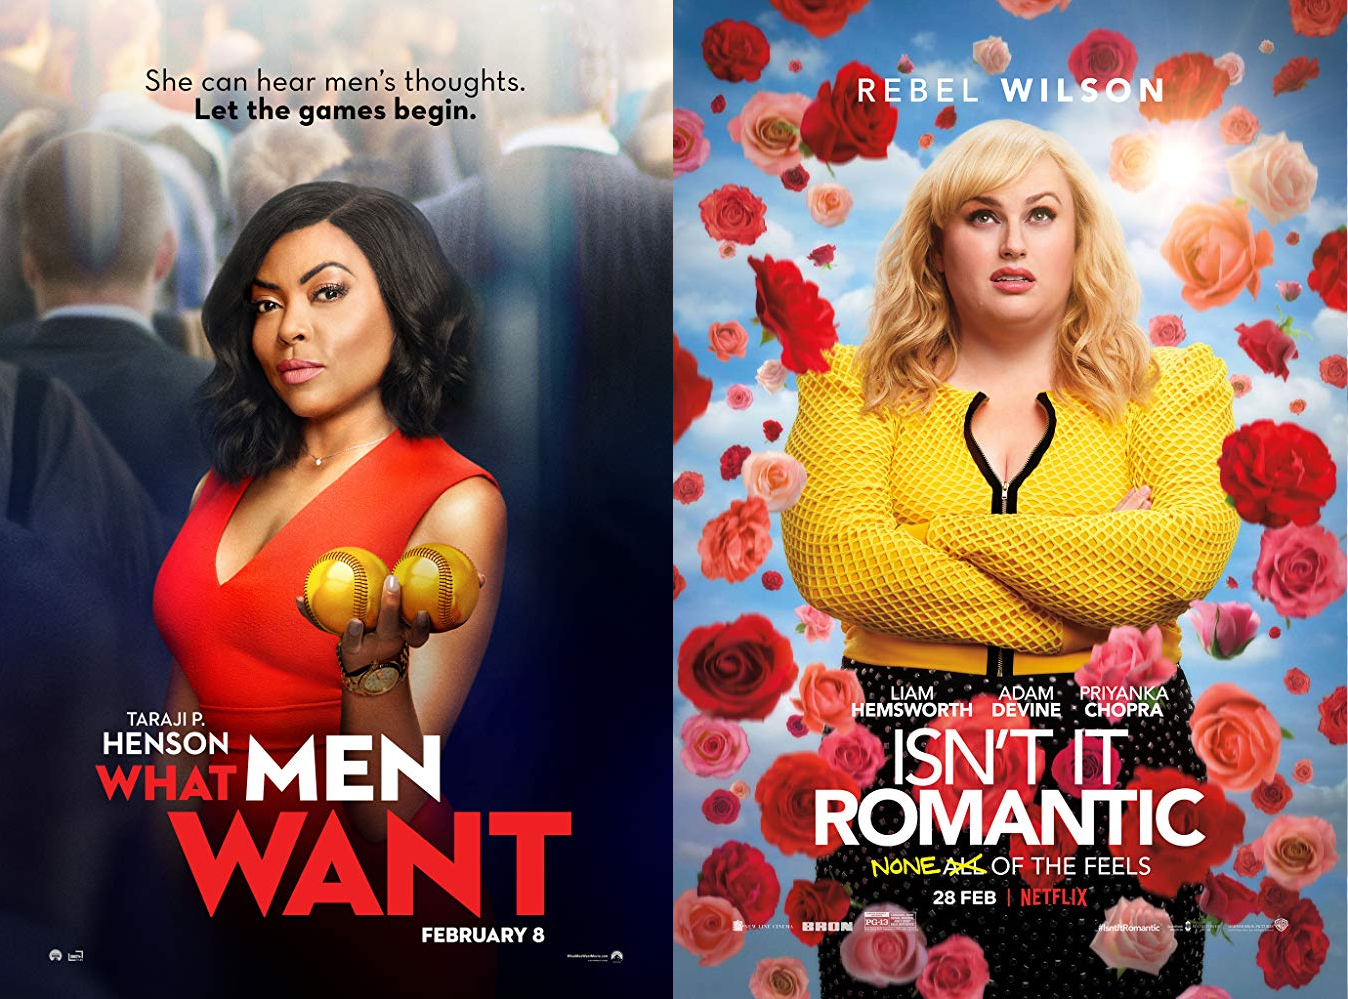 Battle of the Rom-Coms 2019: What Men Want vs  Isn't It